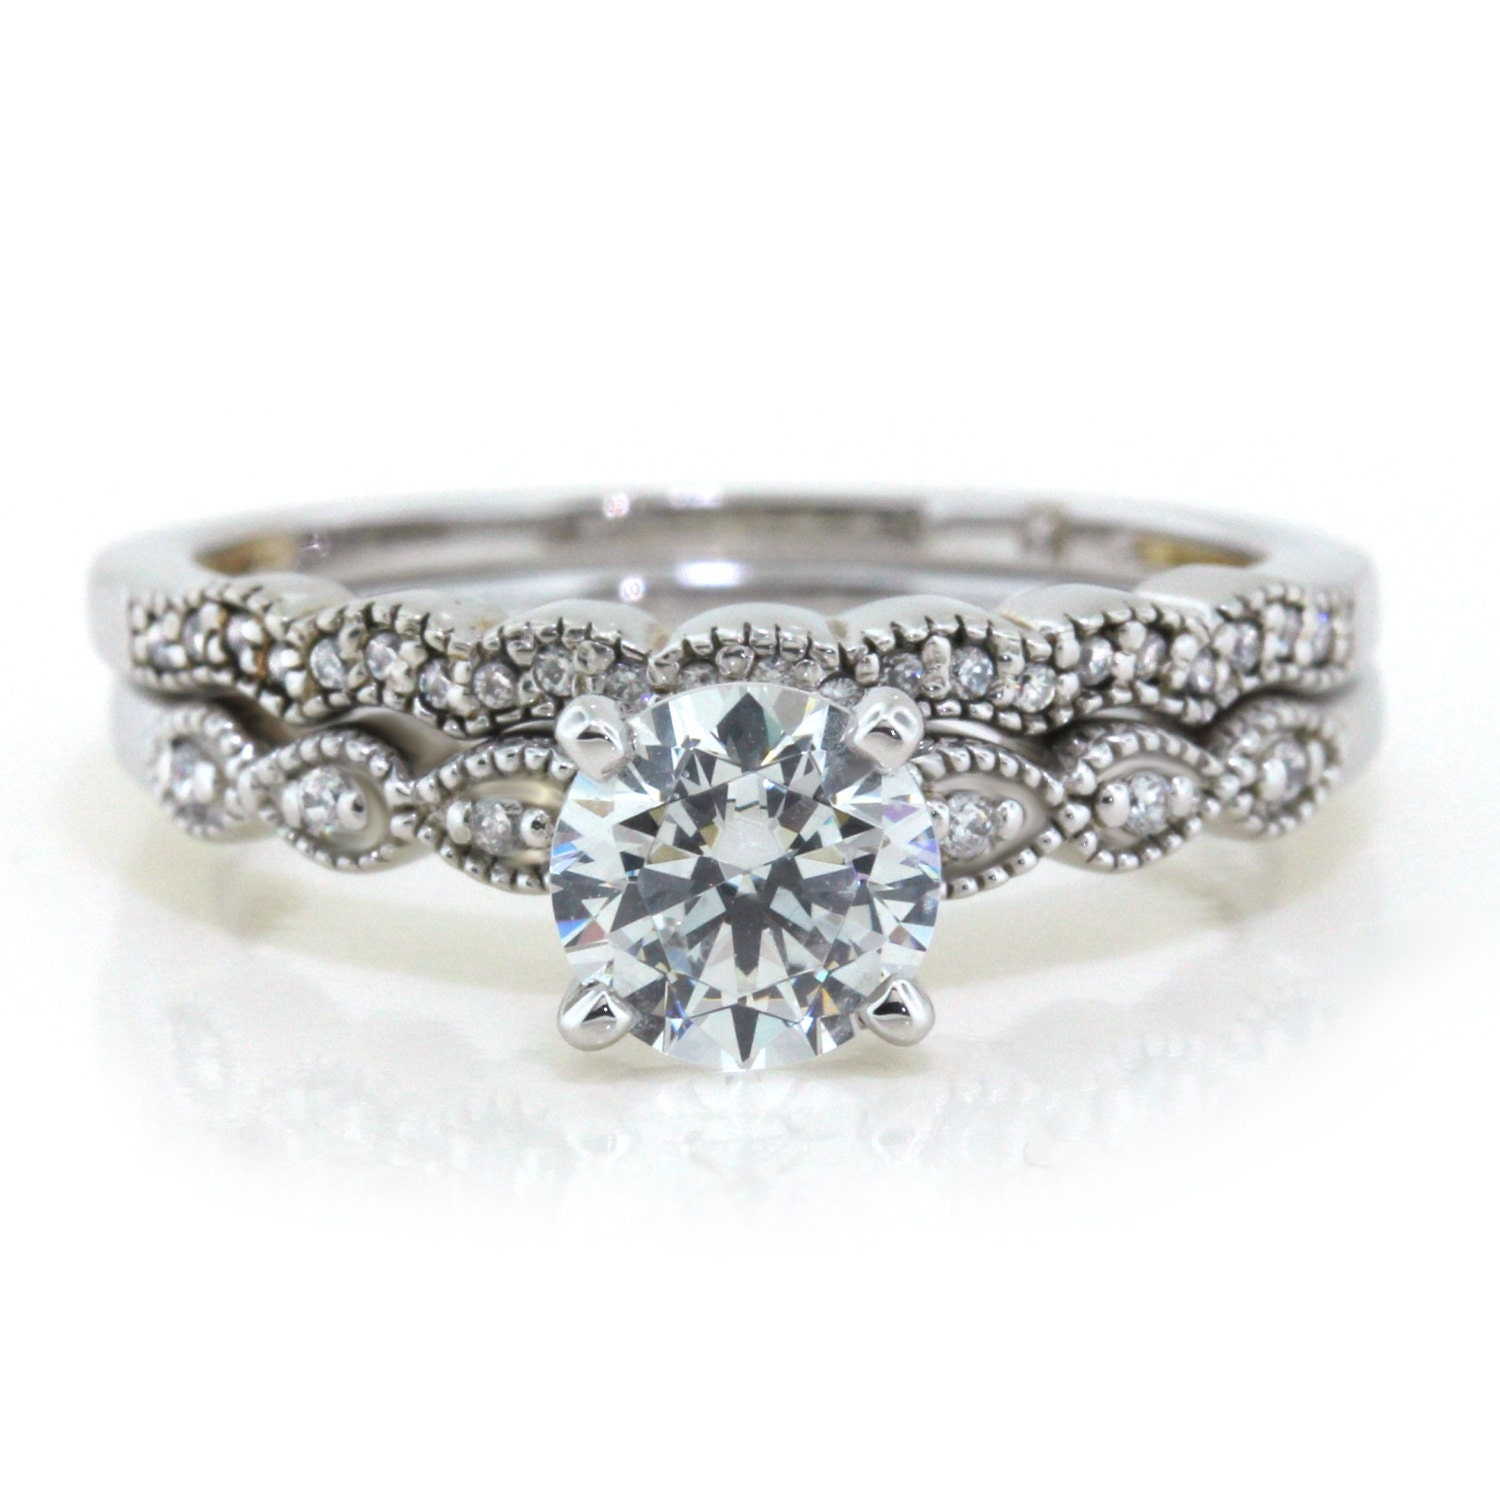 dainty moissanite engagement ring wedding band